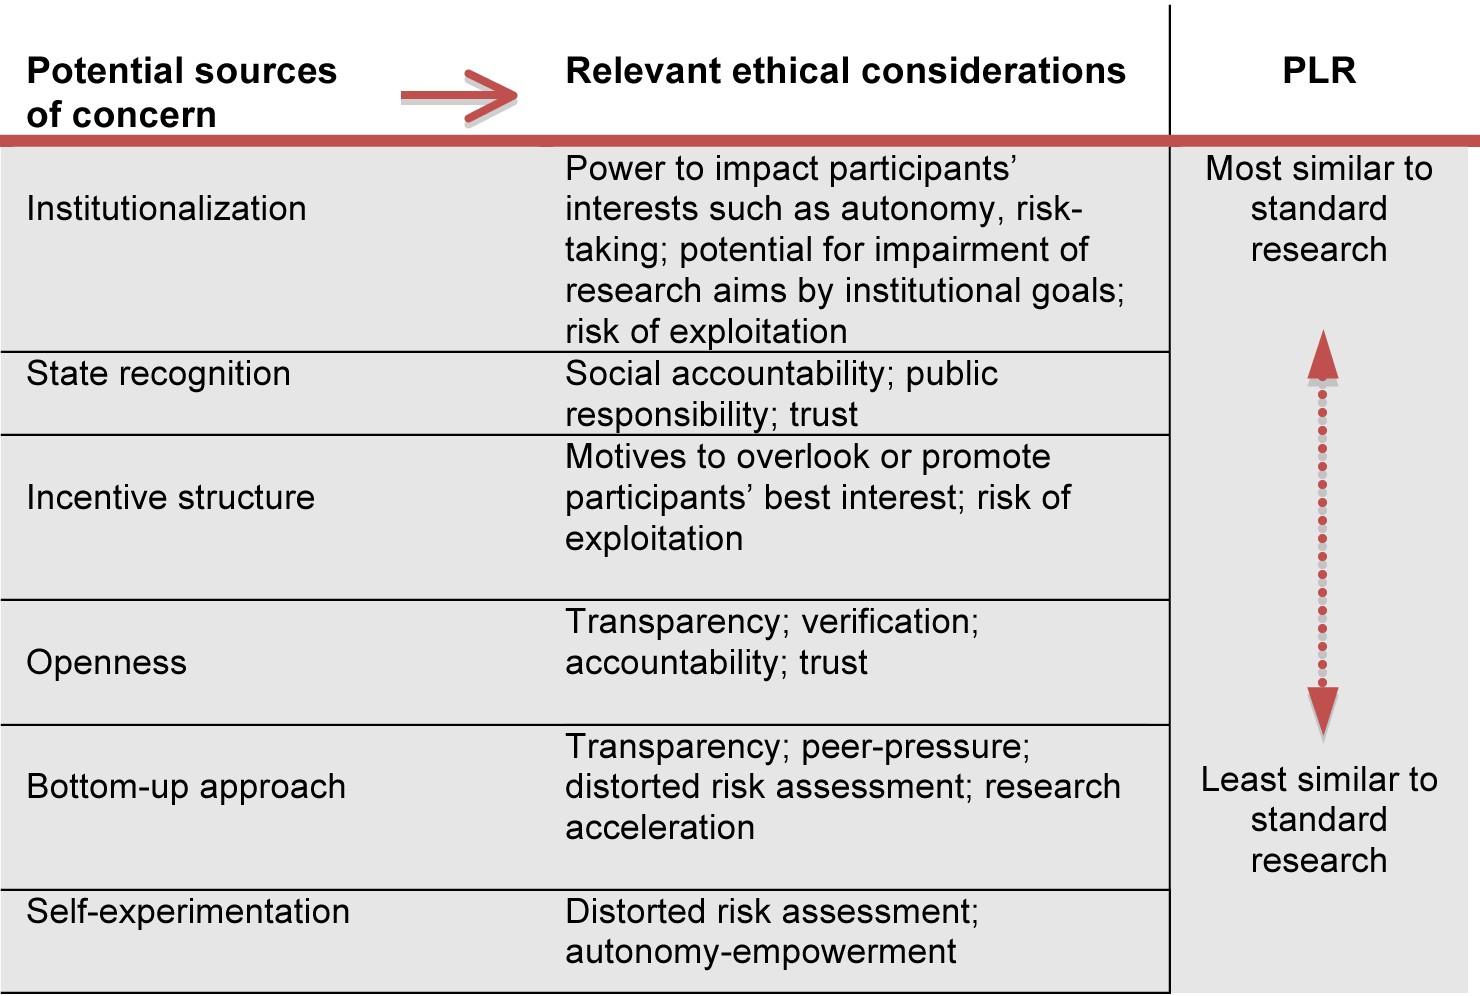 Ethical considerations in PLR (resulting from comparing PLR with standard research).